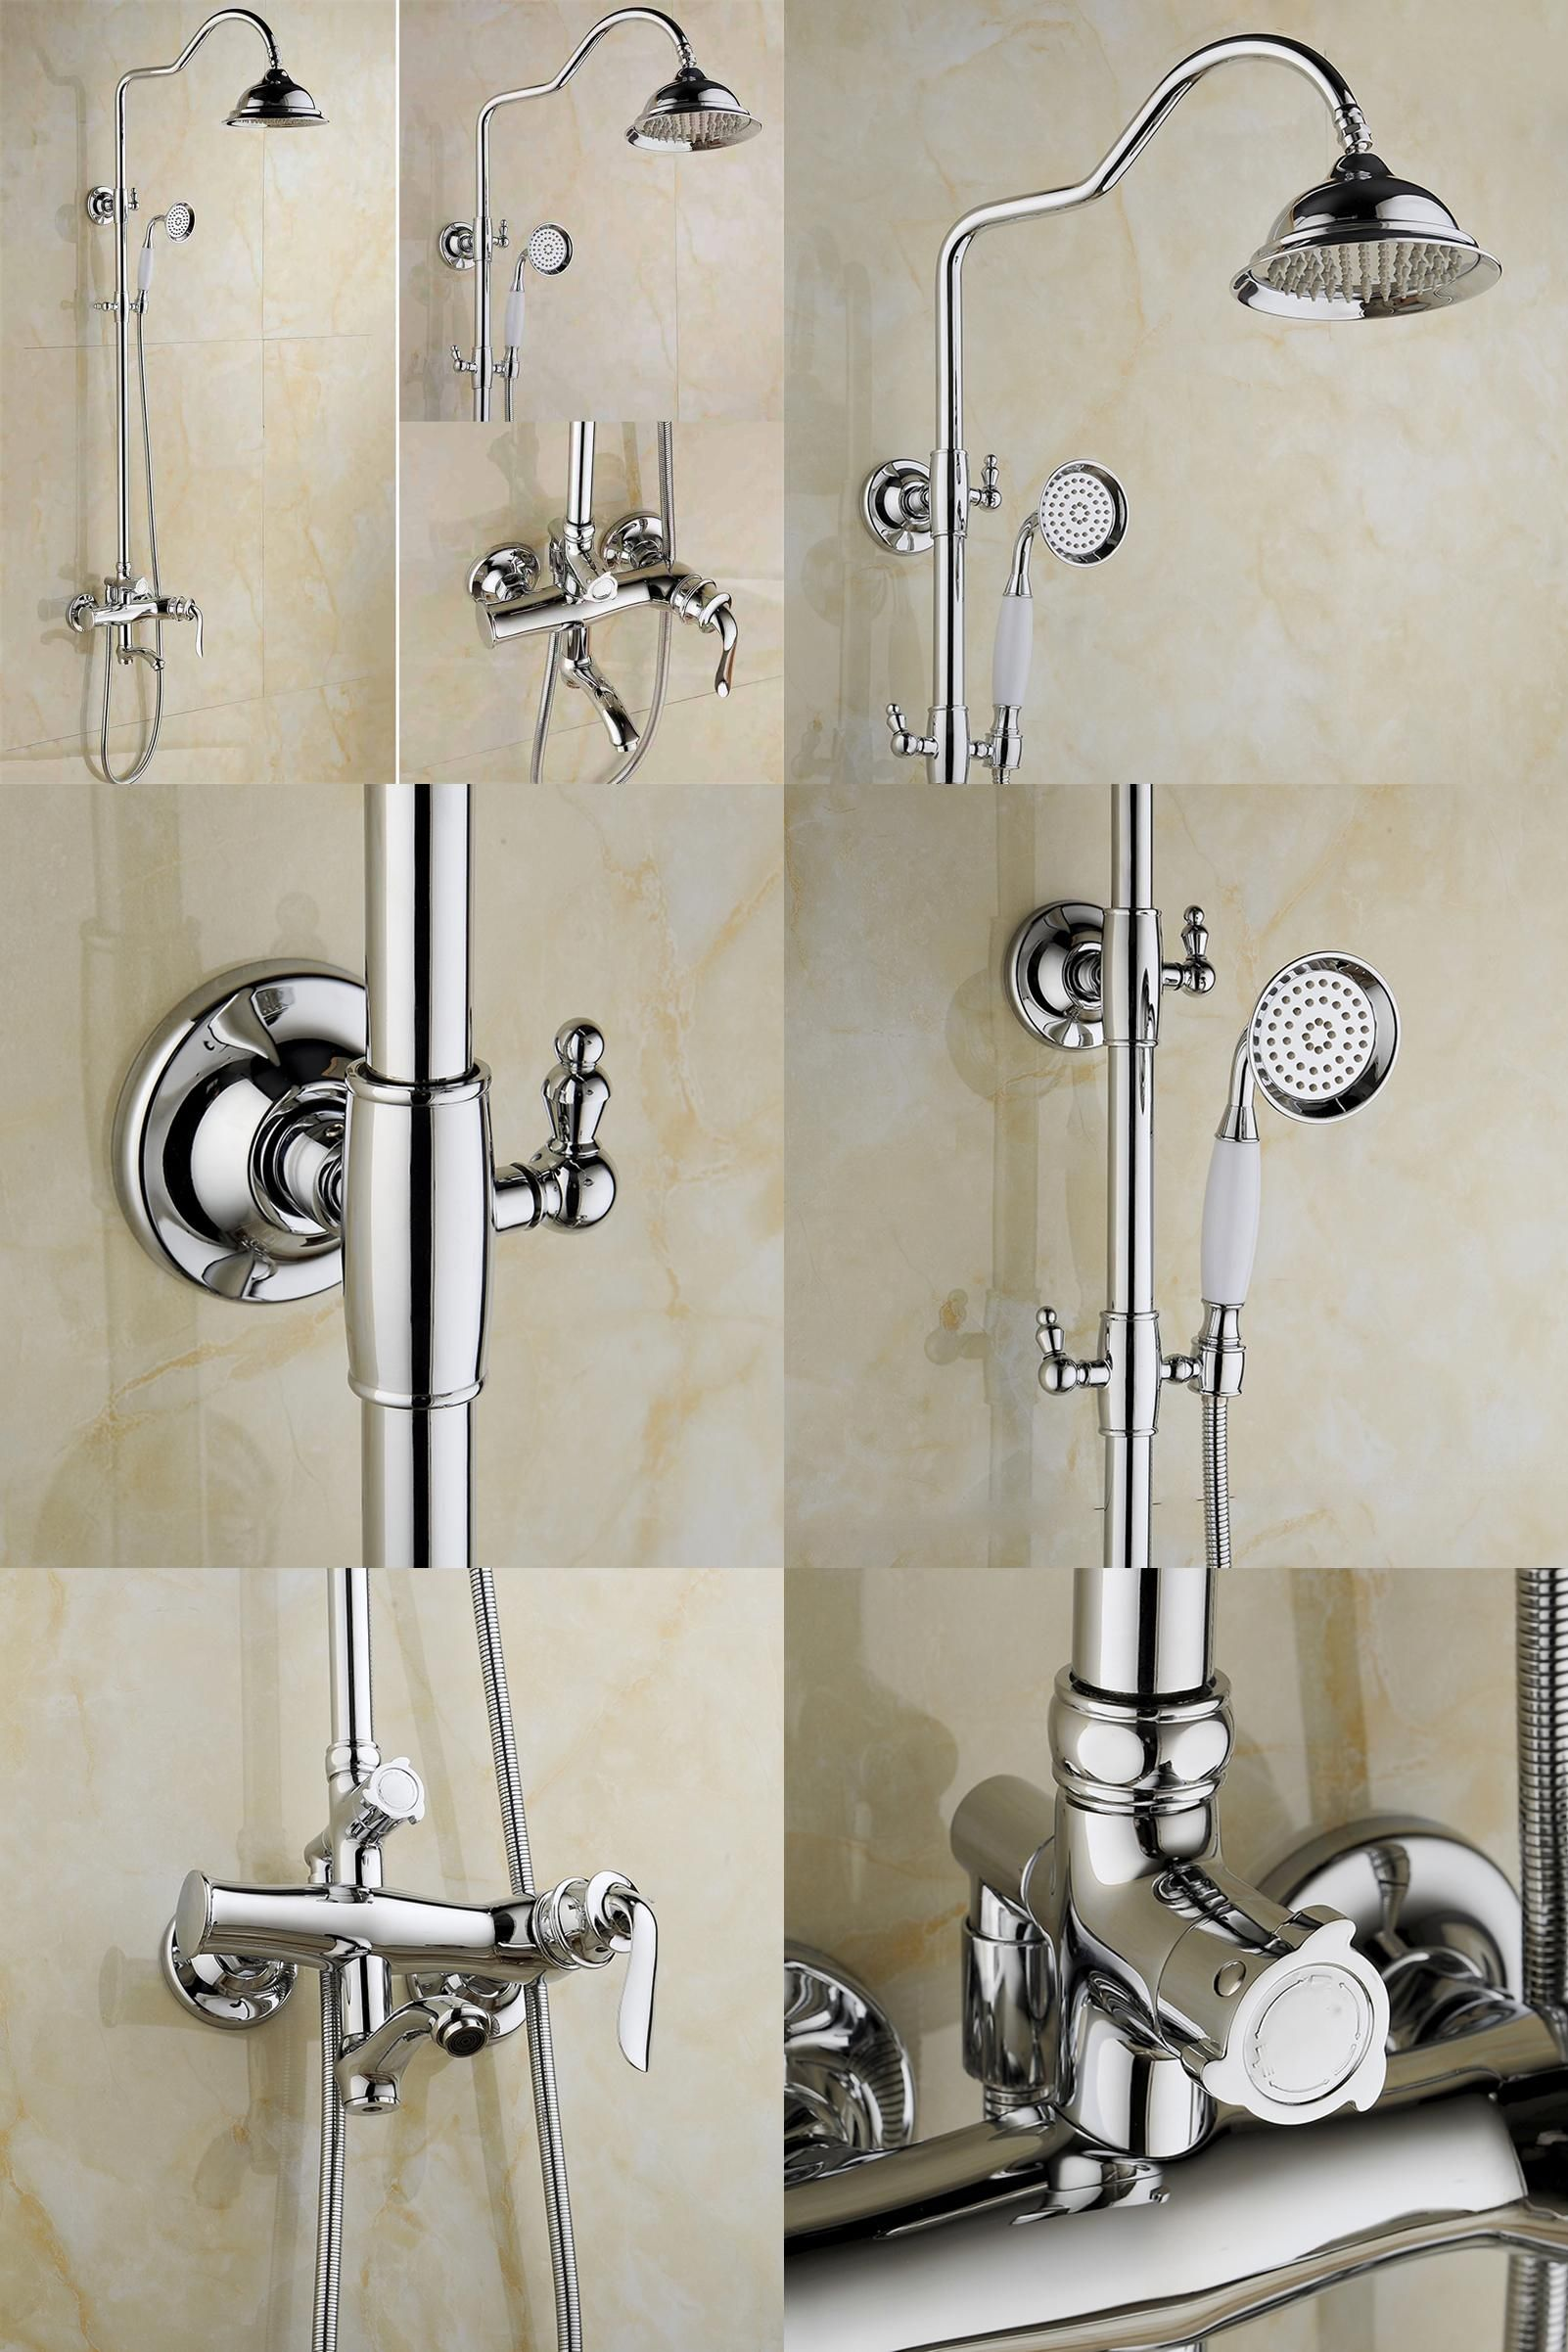 Visit To Buy Flg Bathroom Shower Set Brass Chrome Shower Faucet